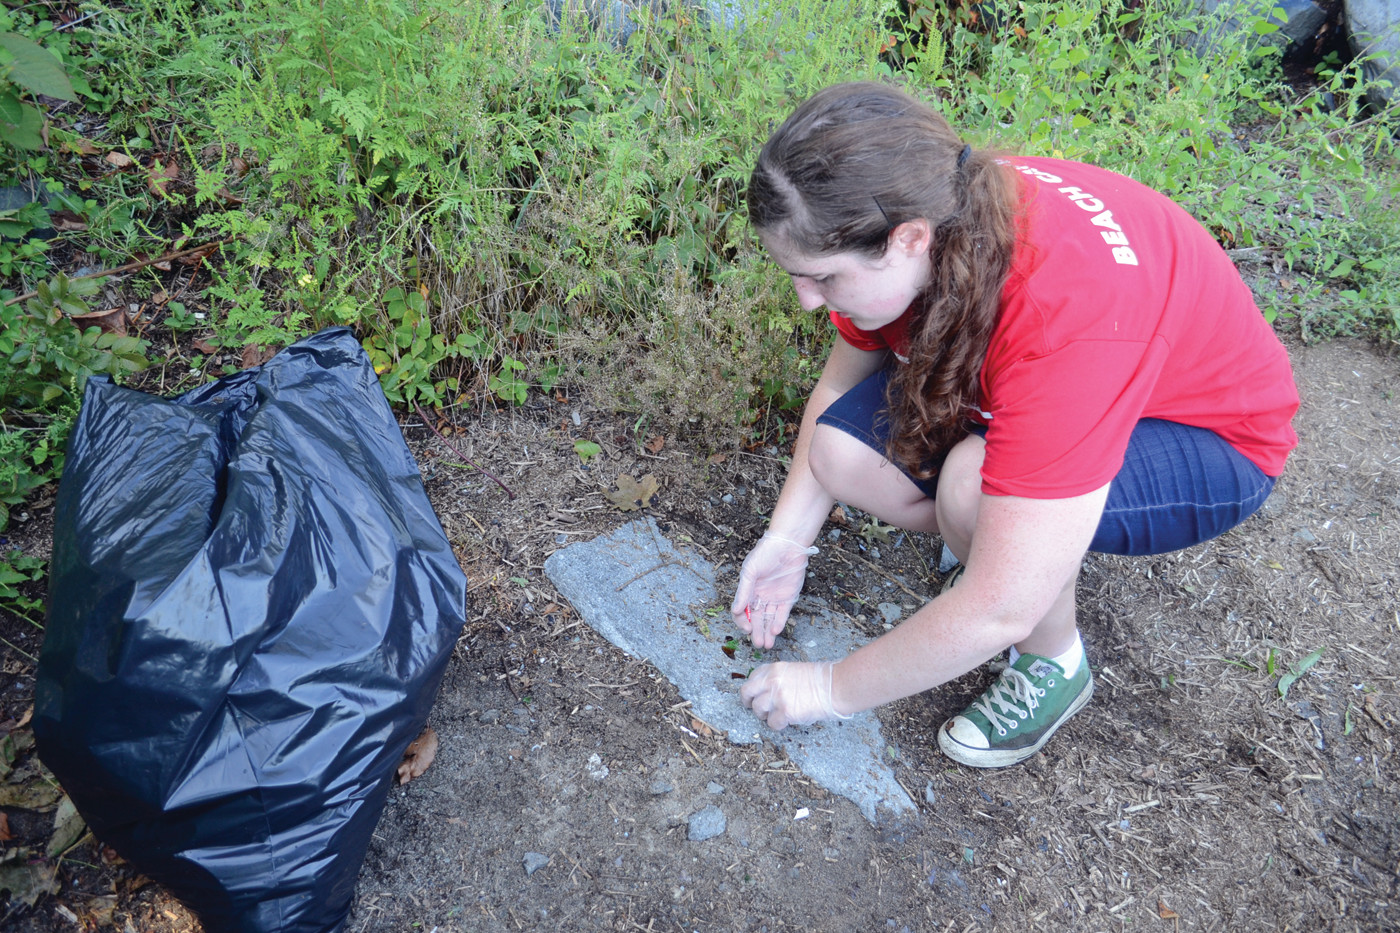 EVERY LITTLE BIT MATTERS: Debbie Woolley, working as part of a volunteer management coordinator internship with Save the Bay, picks up little shards of glass off a walking path at Salter Grove.